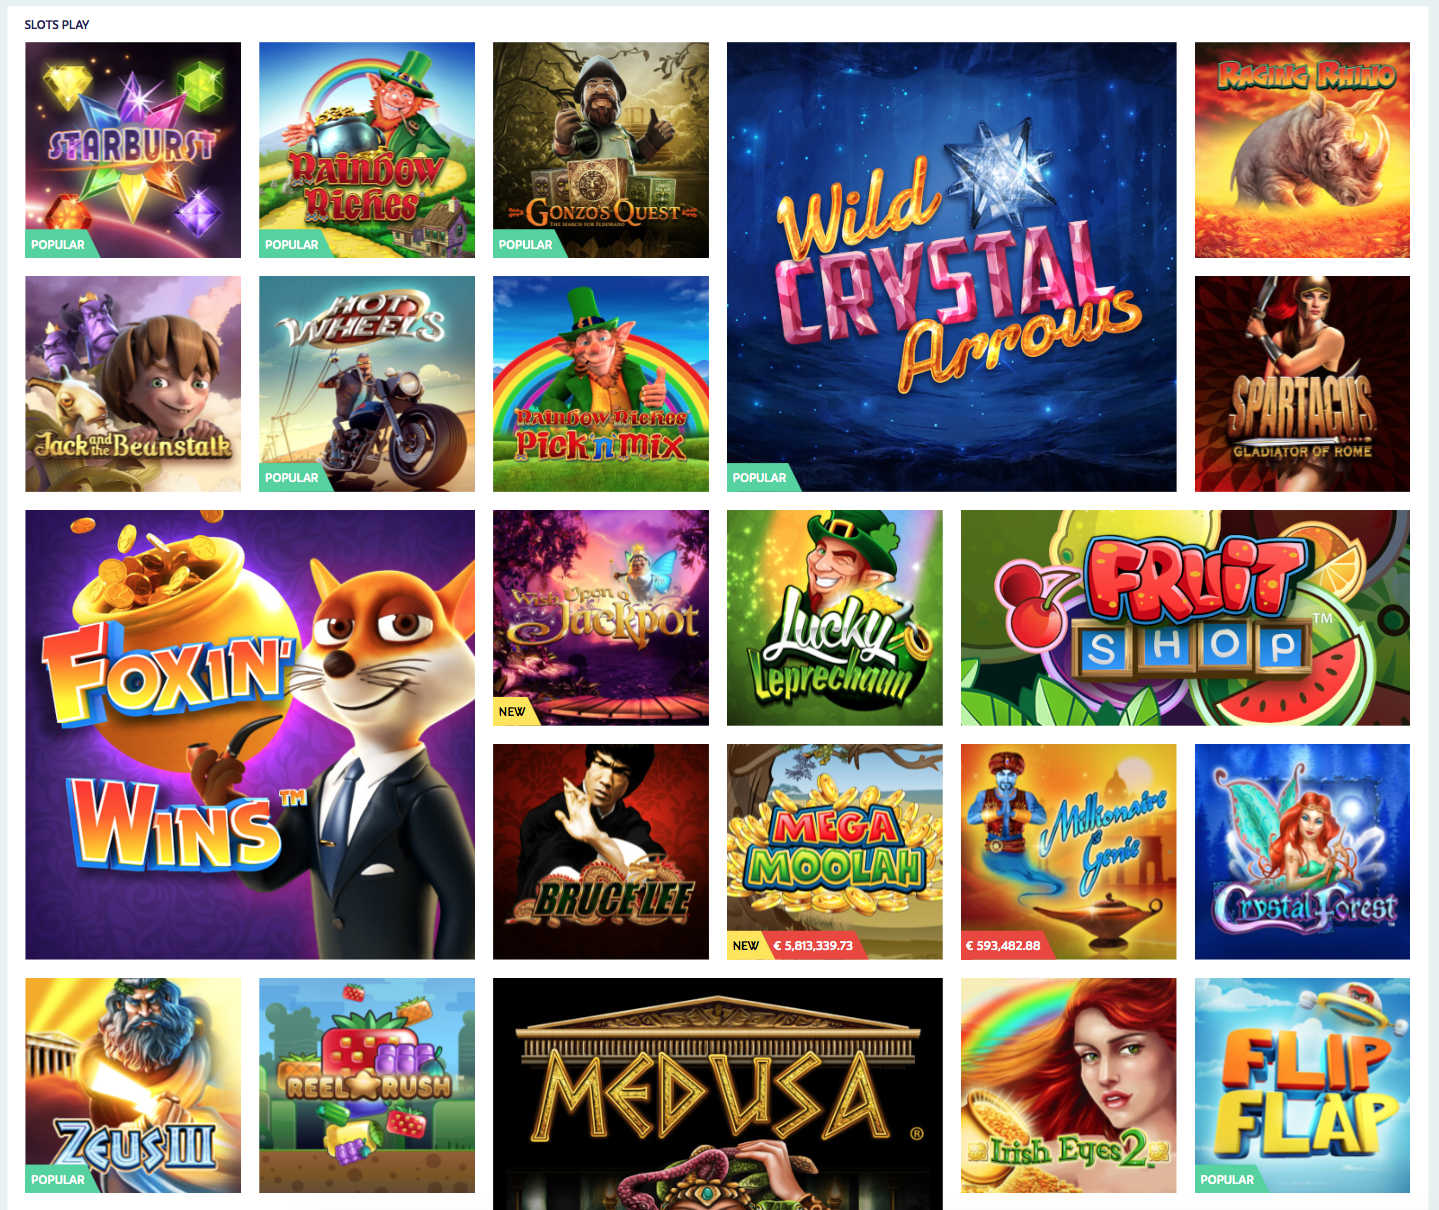 Cash Back Archives - Get Free Spins at the Best UK Online Casino | PlayOJO